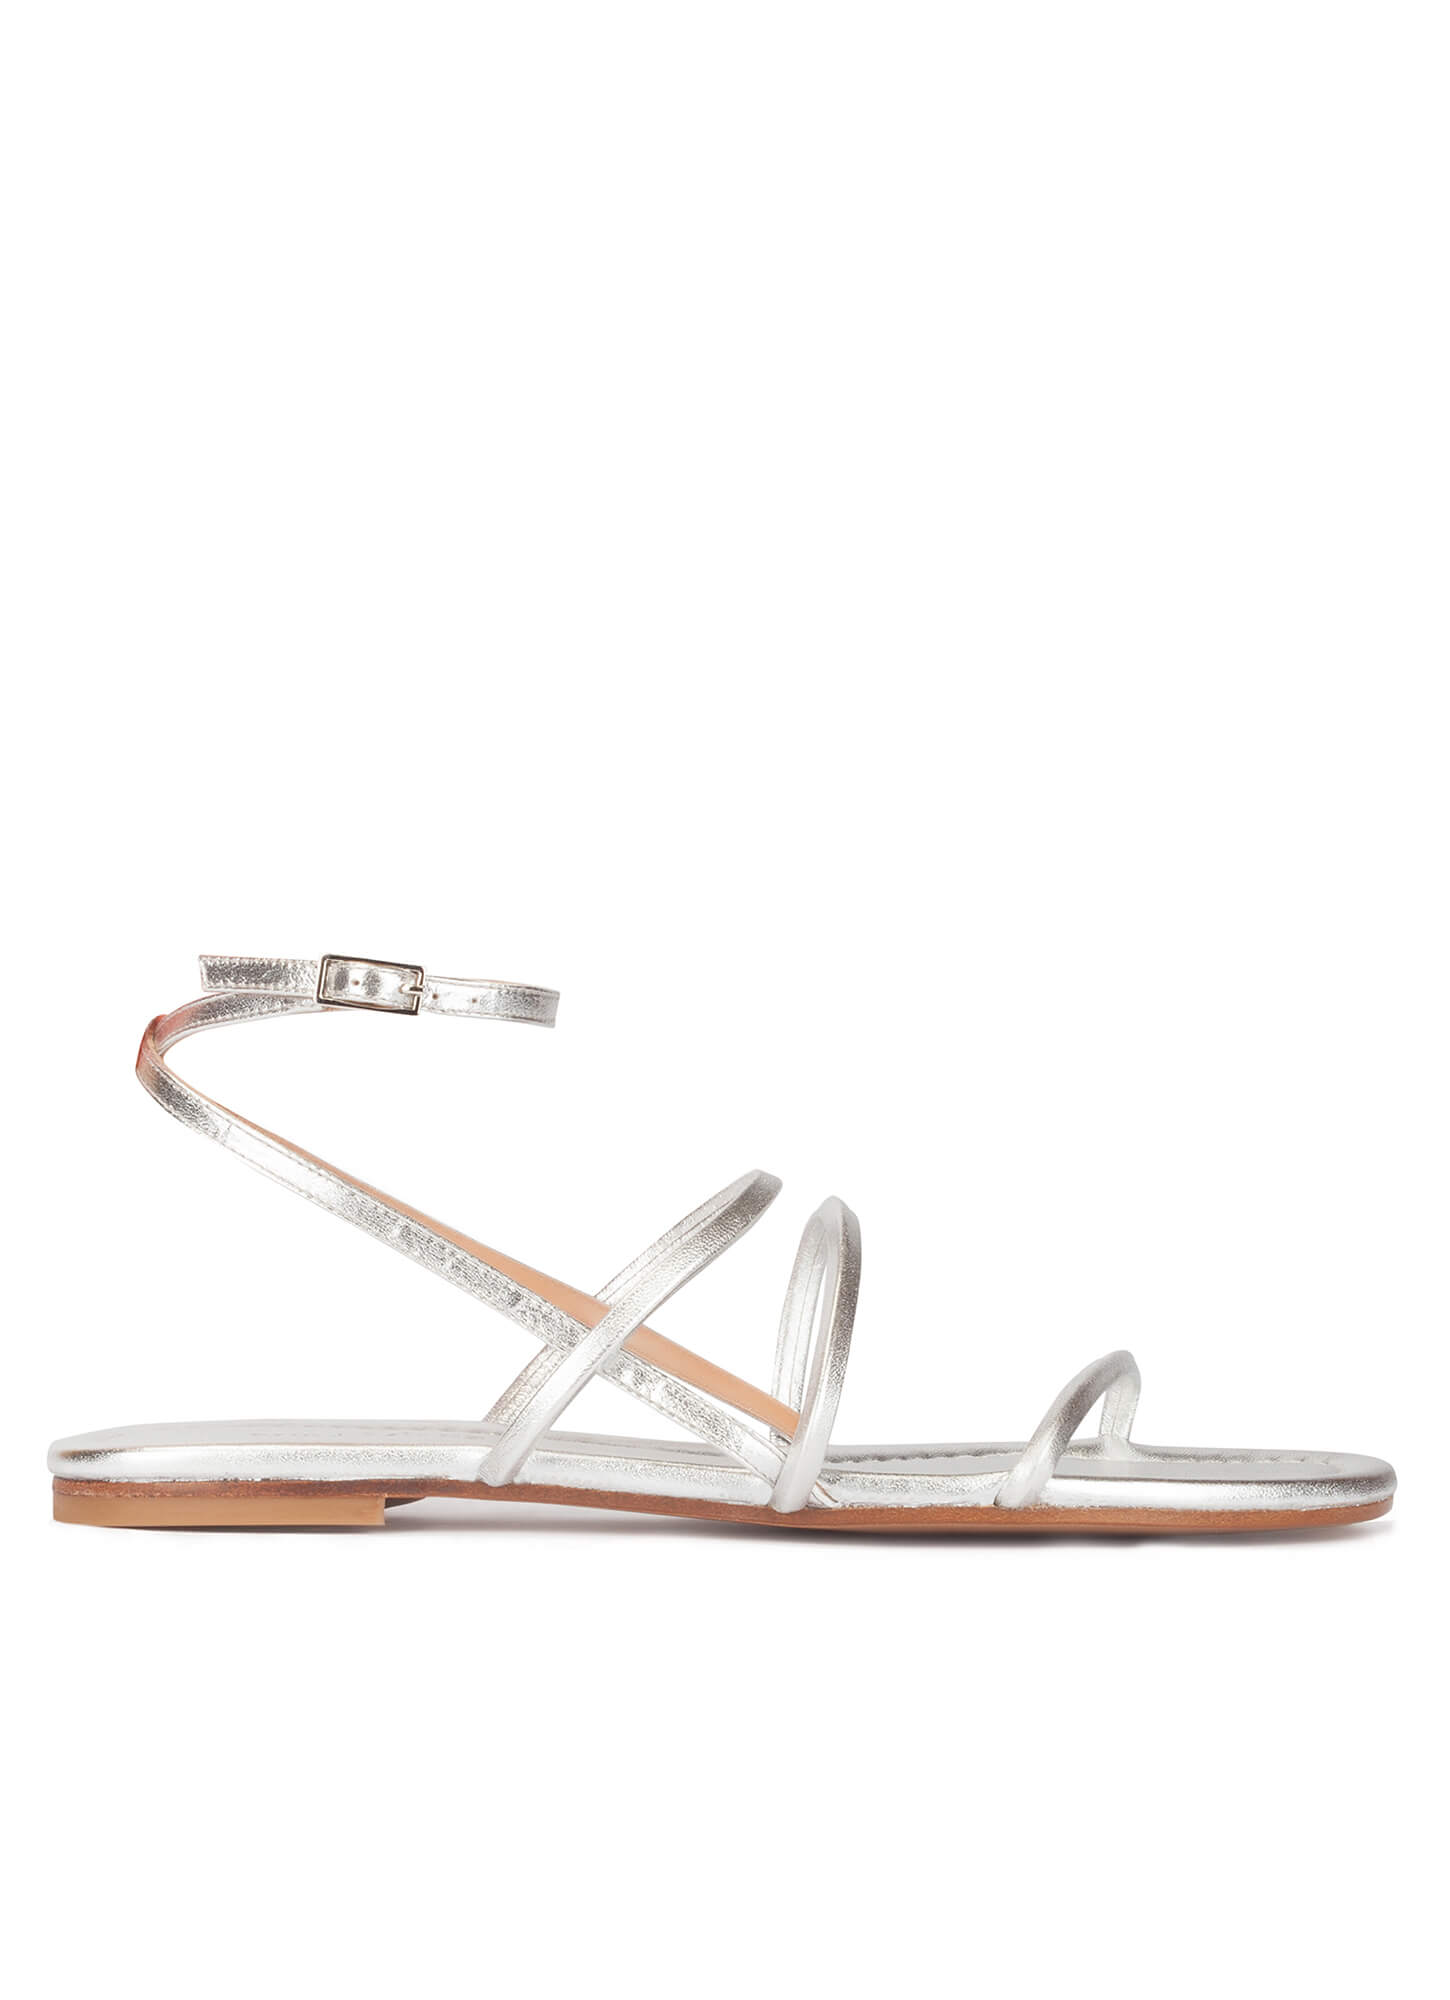 f5f41685a Strappy flat sandals in silver leather . PURA LOPEZ